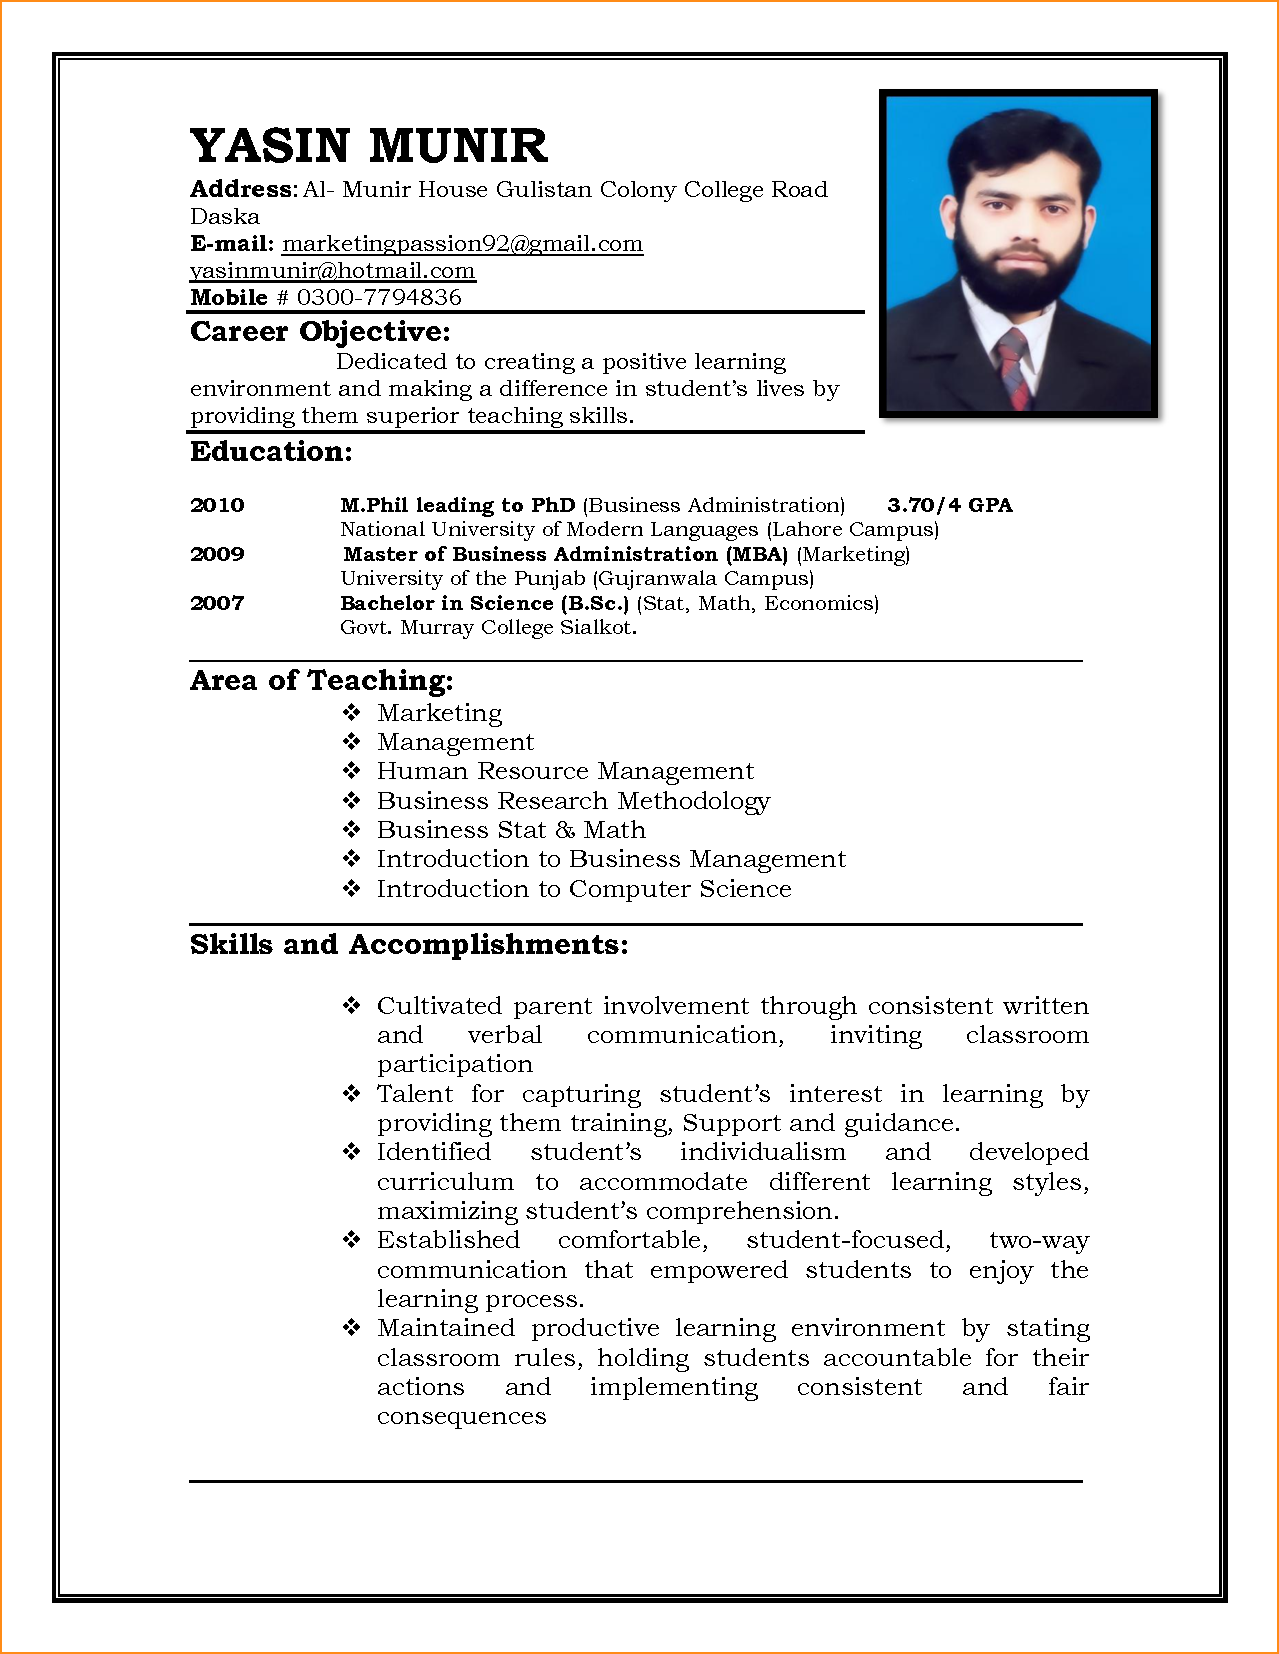 resume format for jobs cv format for job application 75574648